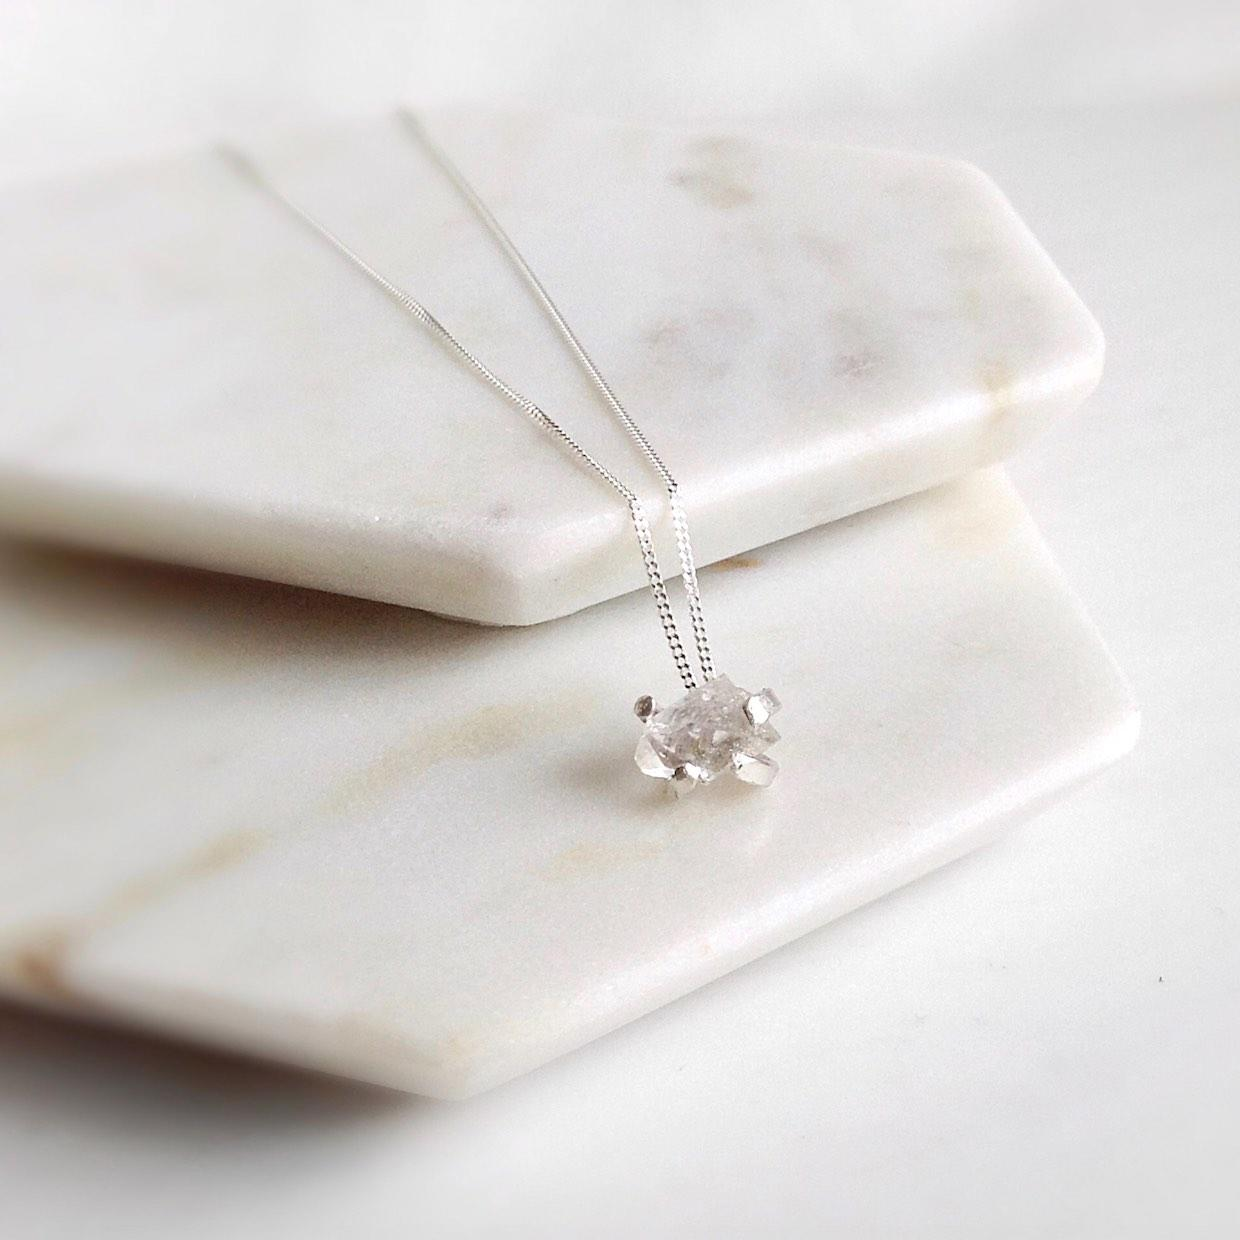 Wearth Diamond Necklace laid on 2 white and grey marble coasters